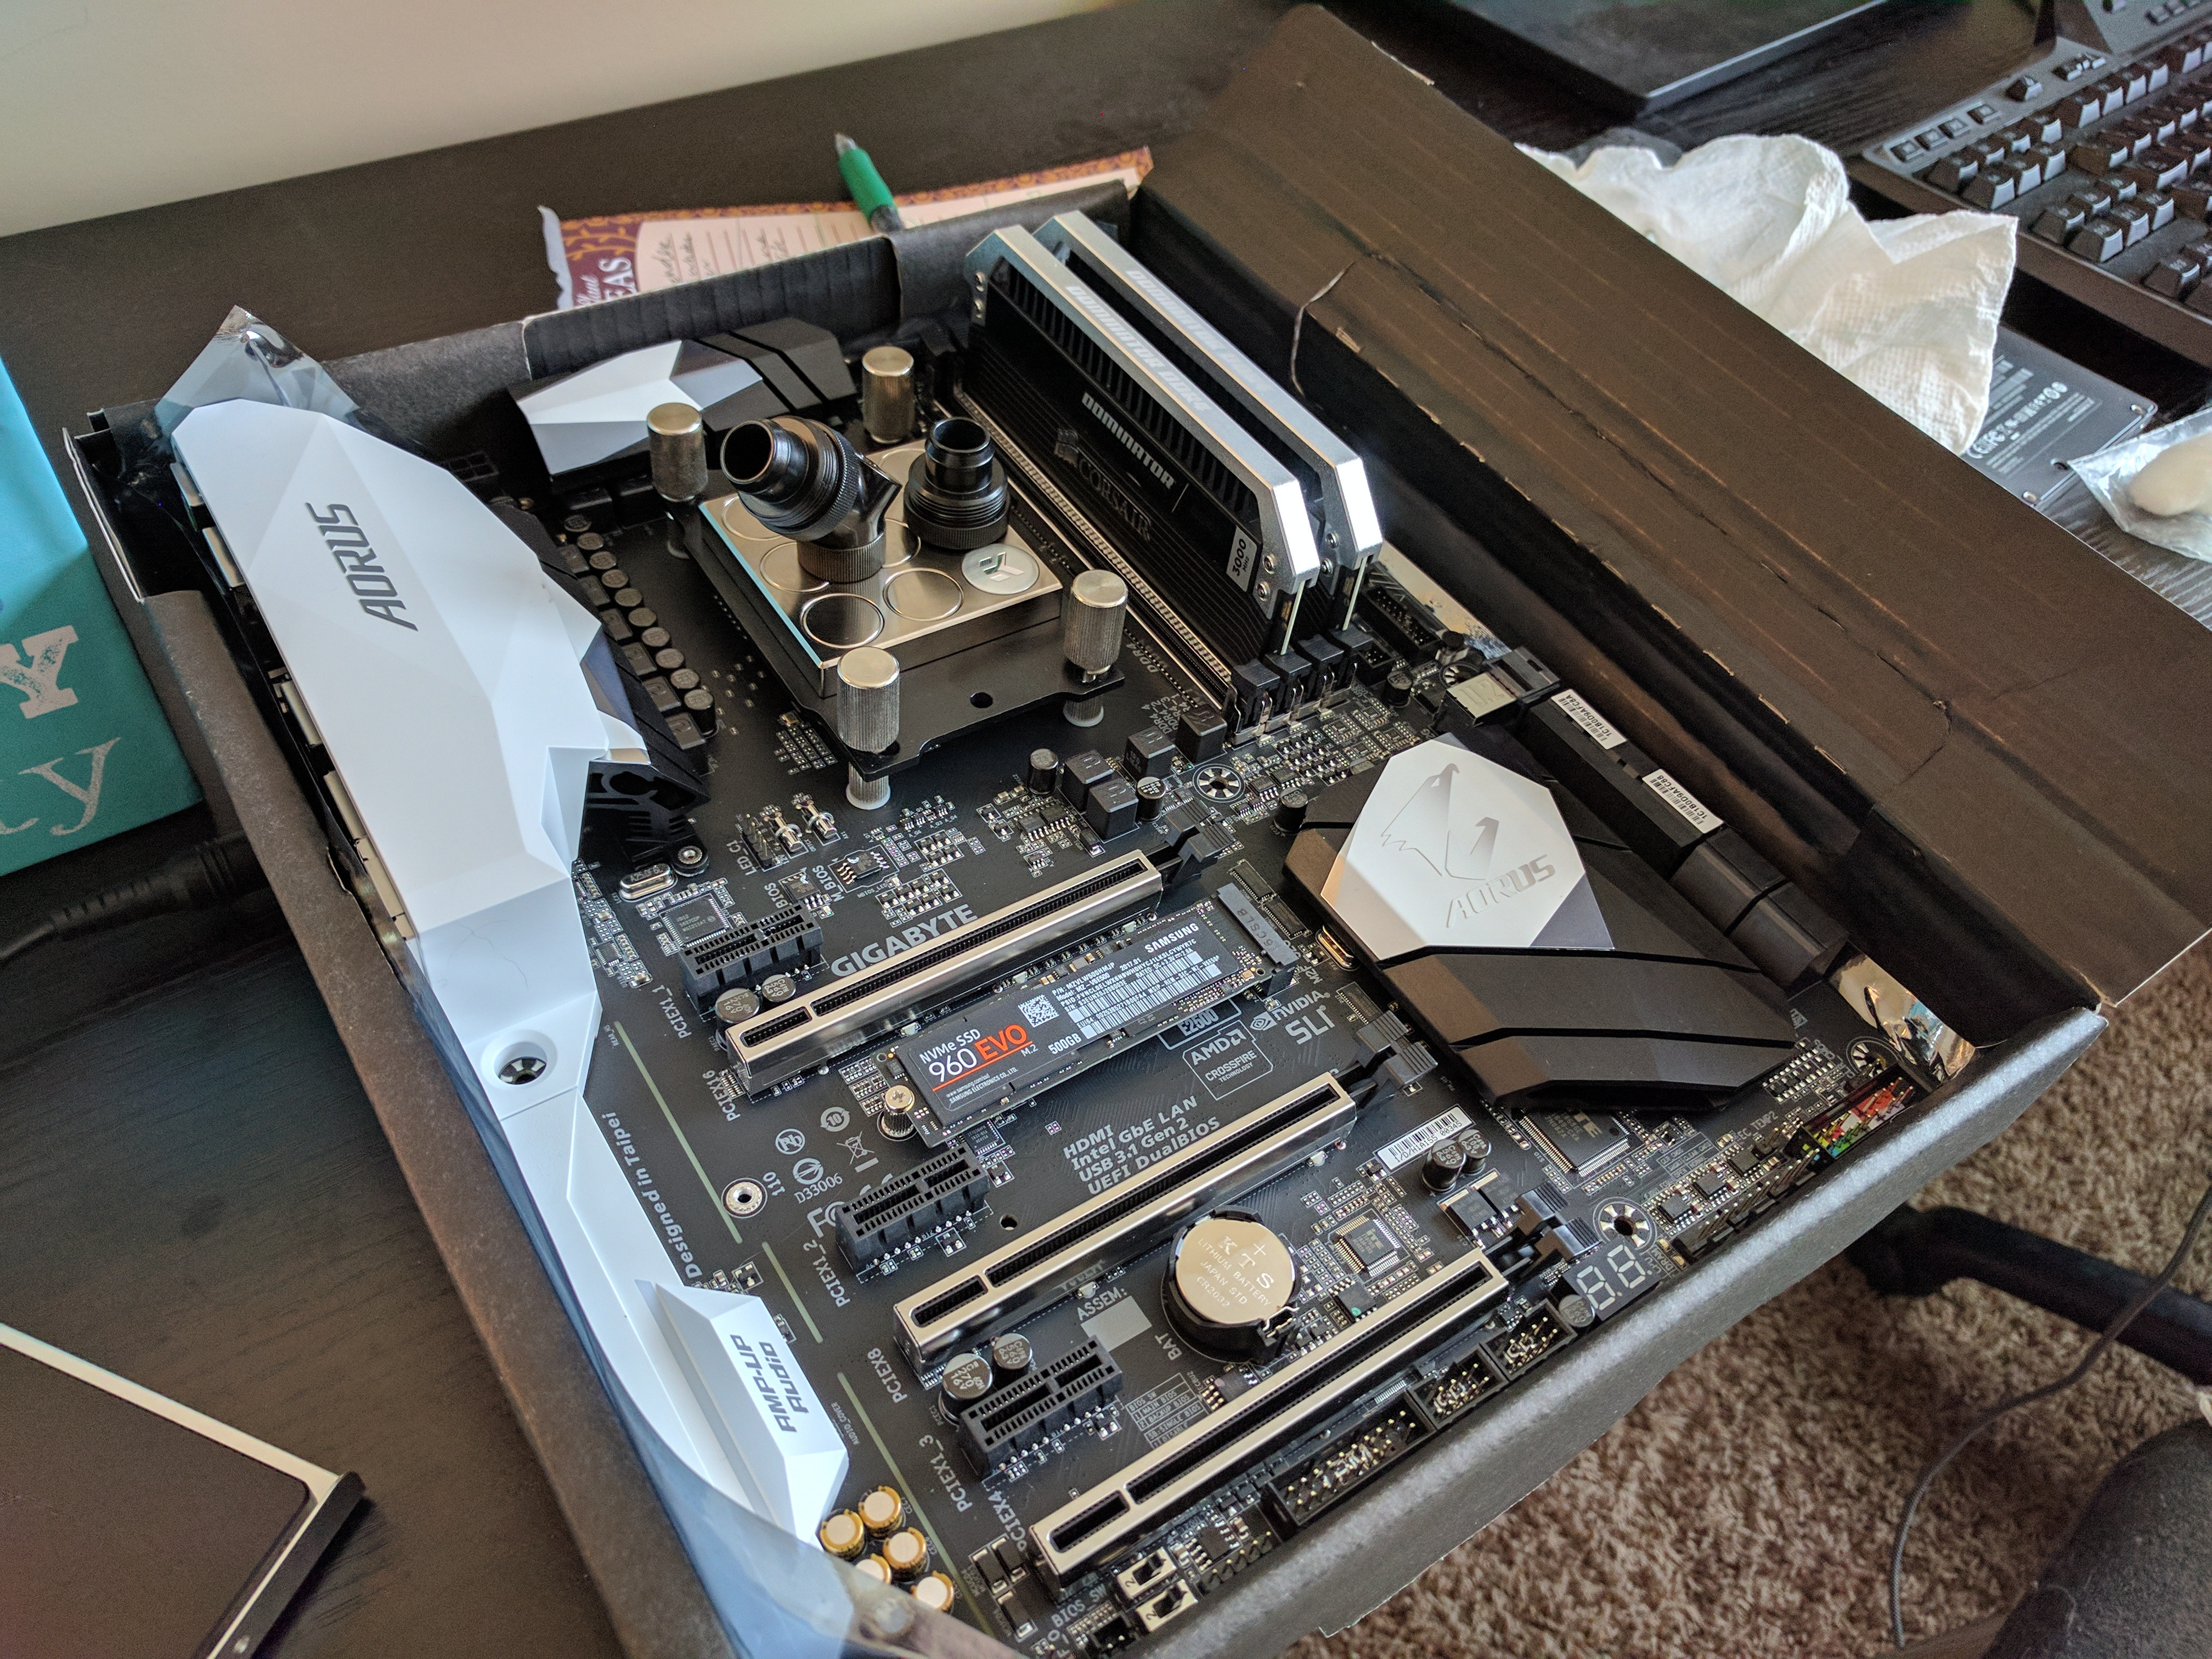 Ax370 Gaming 5 And Ek Supermacy Evo Page 2 An Gigabyte Ga Pitch Than The Stock Am4 Backplate I Suppose Could Have Purchased Mounting Kit With Different Bolts But So Far Everything Has Been Working